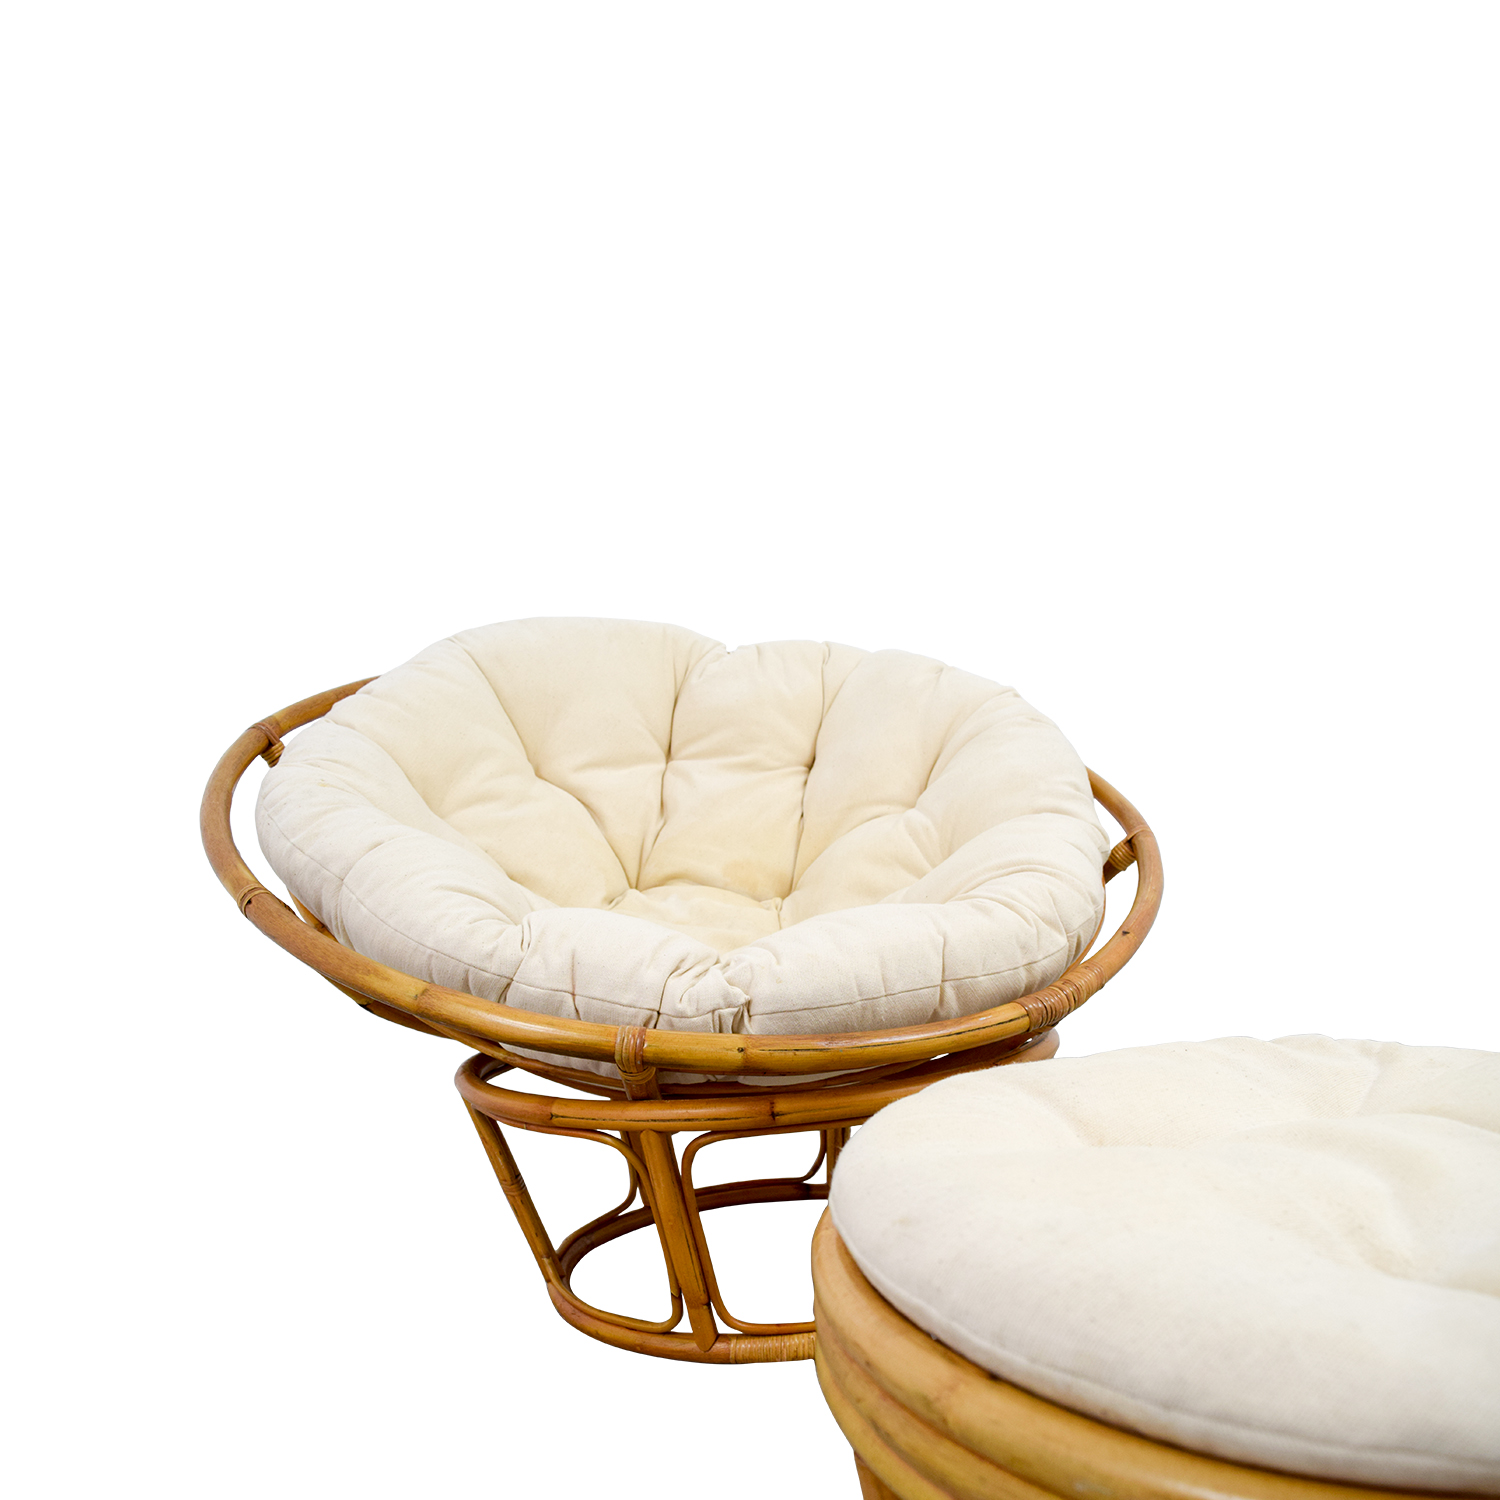 68 Off Pier 1 Pier 1 Papasan Chair With Footstool Chairs